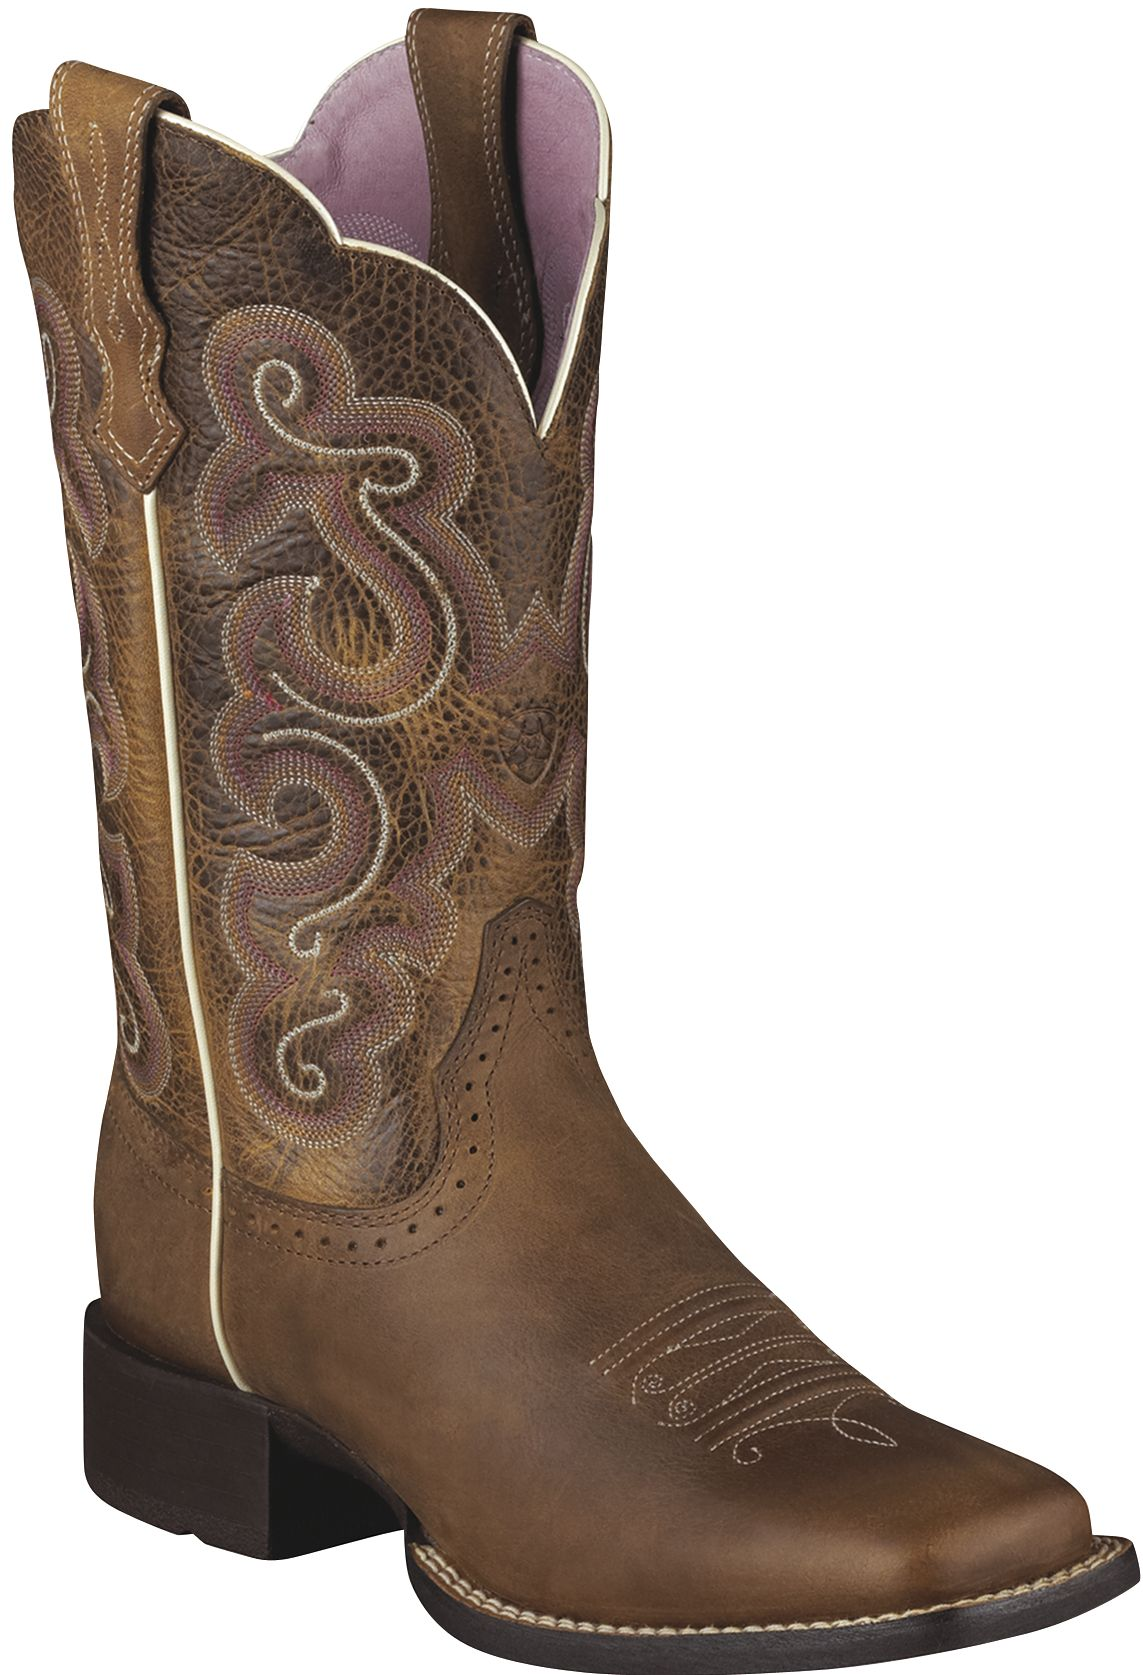 "Ariat Women's Quickdraw 11"" Western Boots